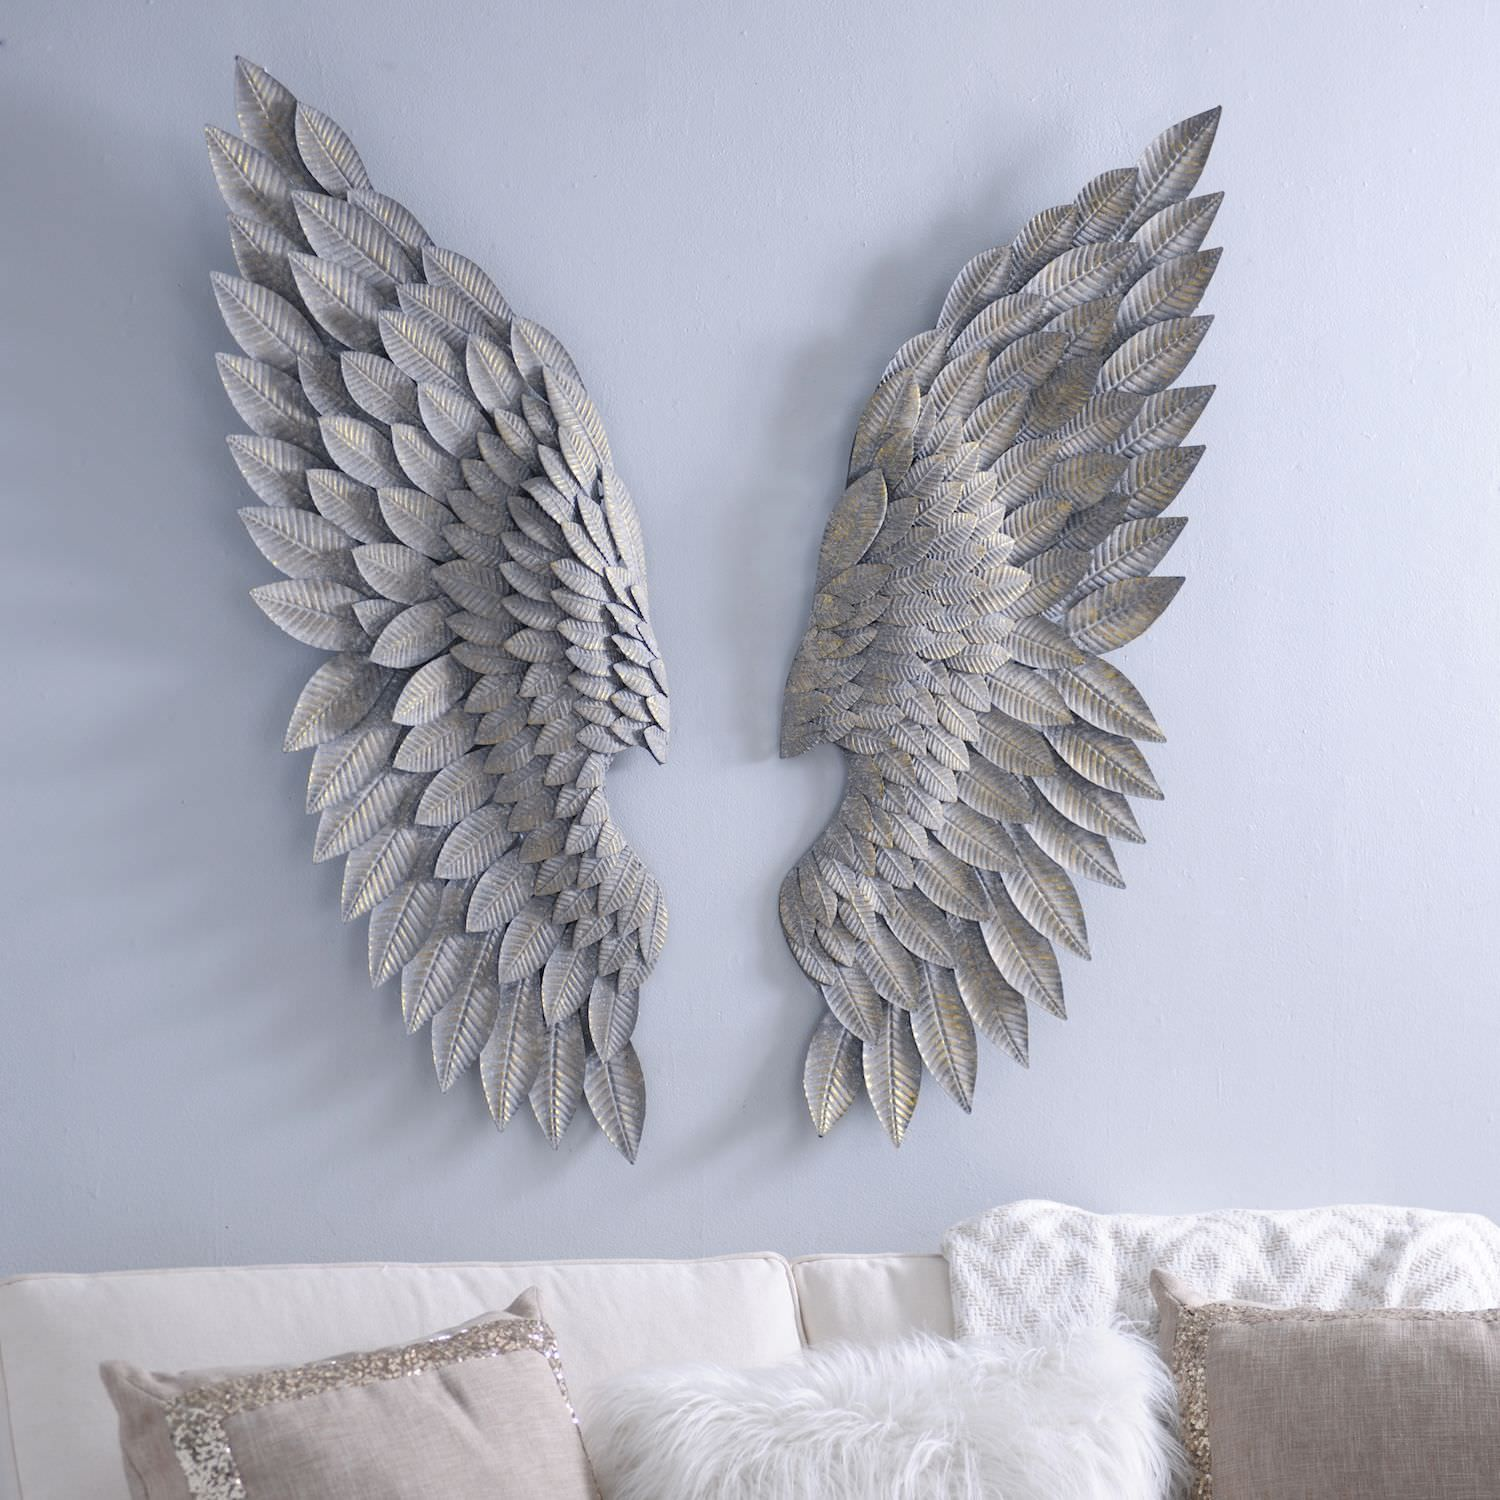 Beautiful And Charming Angel Wings Decor In 2020 Angel Wings Decor Angel Wings Wall Decor Angel Decor